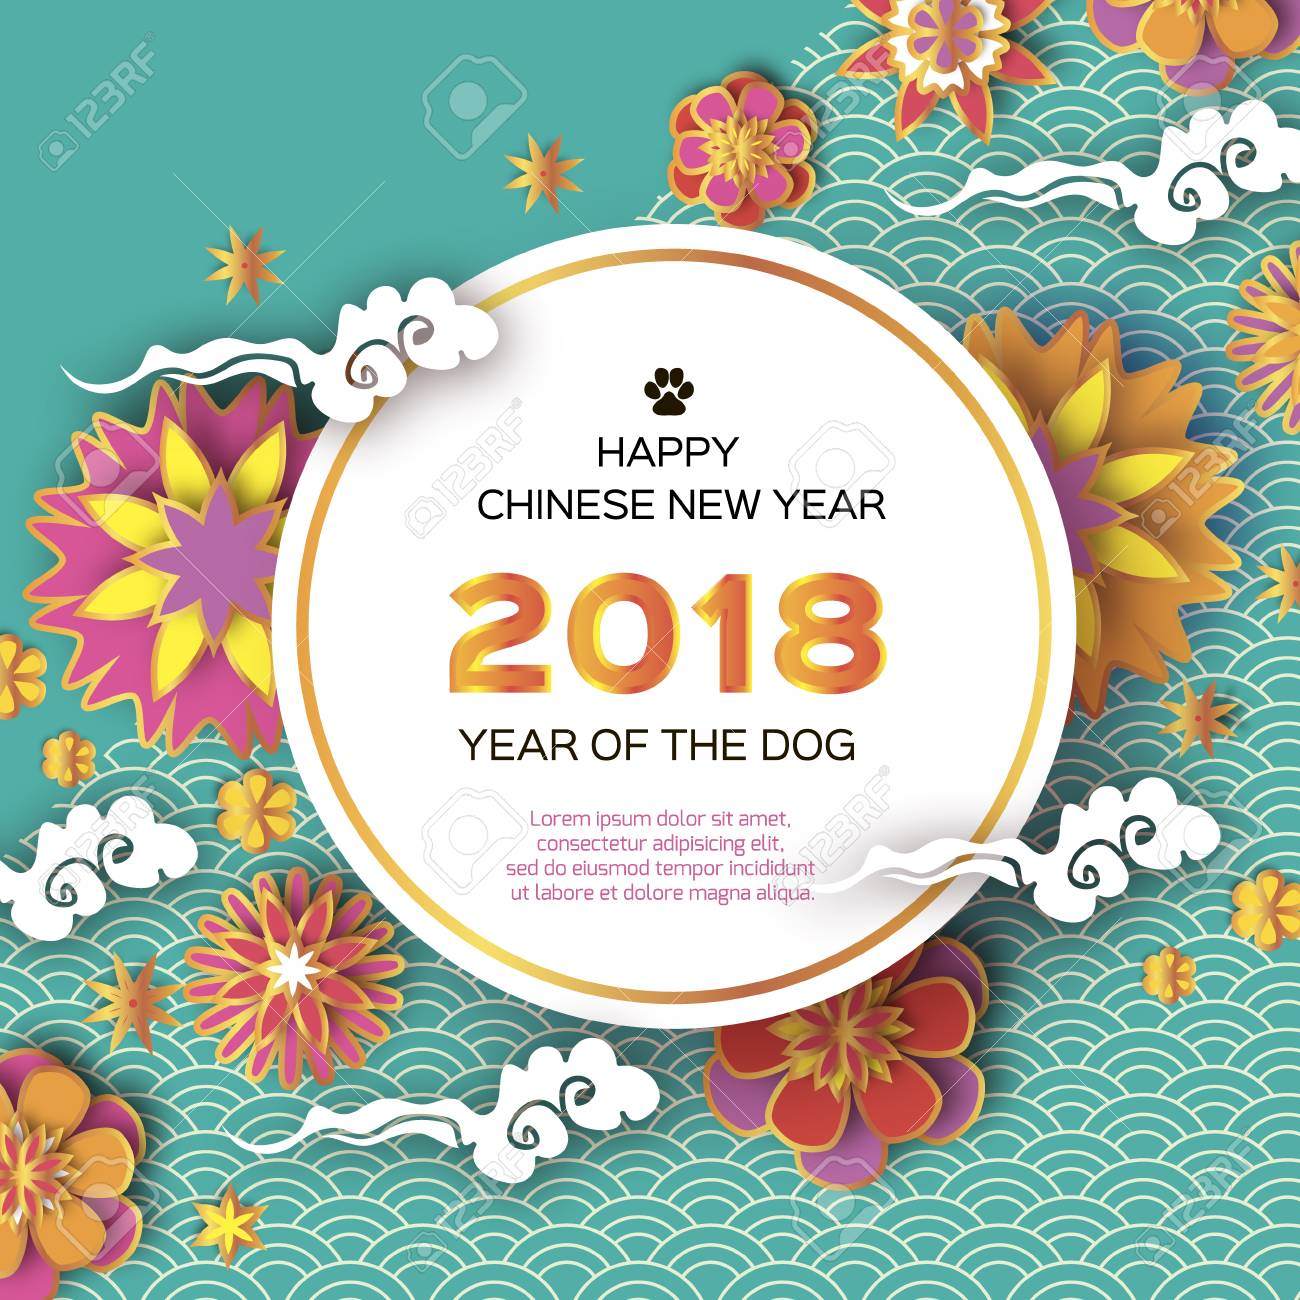 Happy Chinese New Year 2018 Greeting Card Of The Dog Origami Flowers